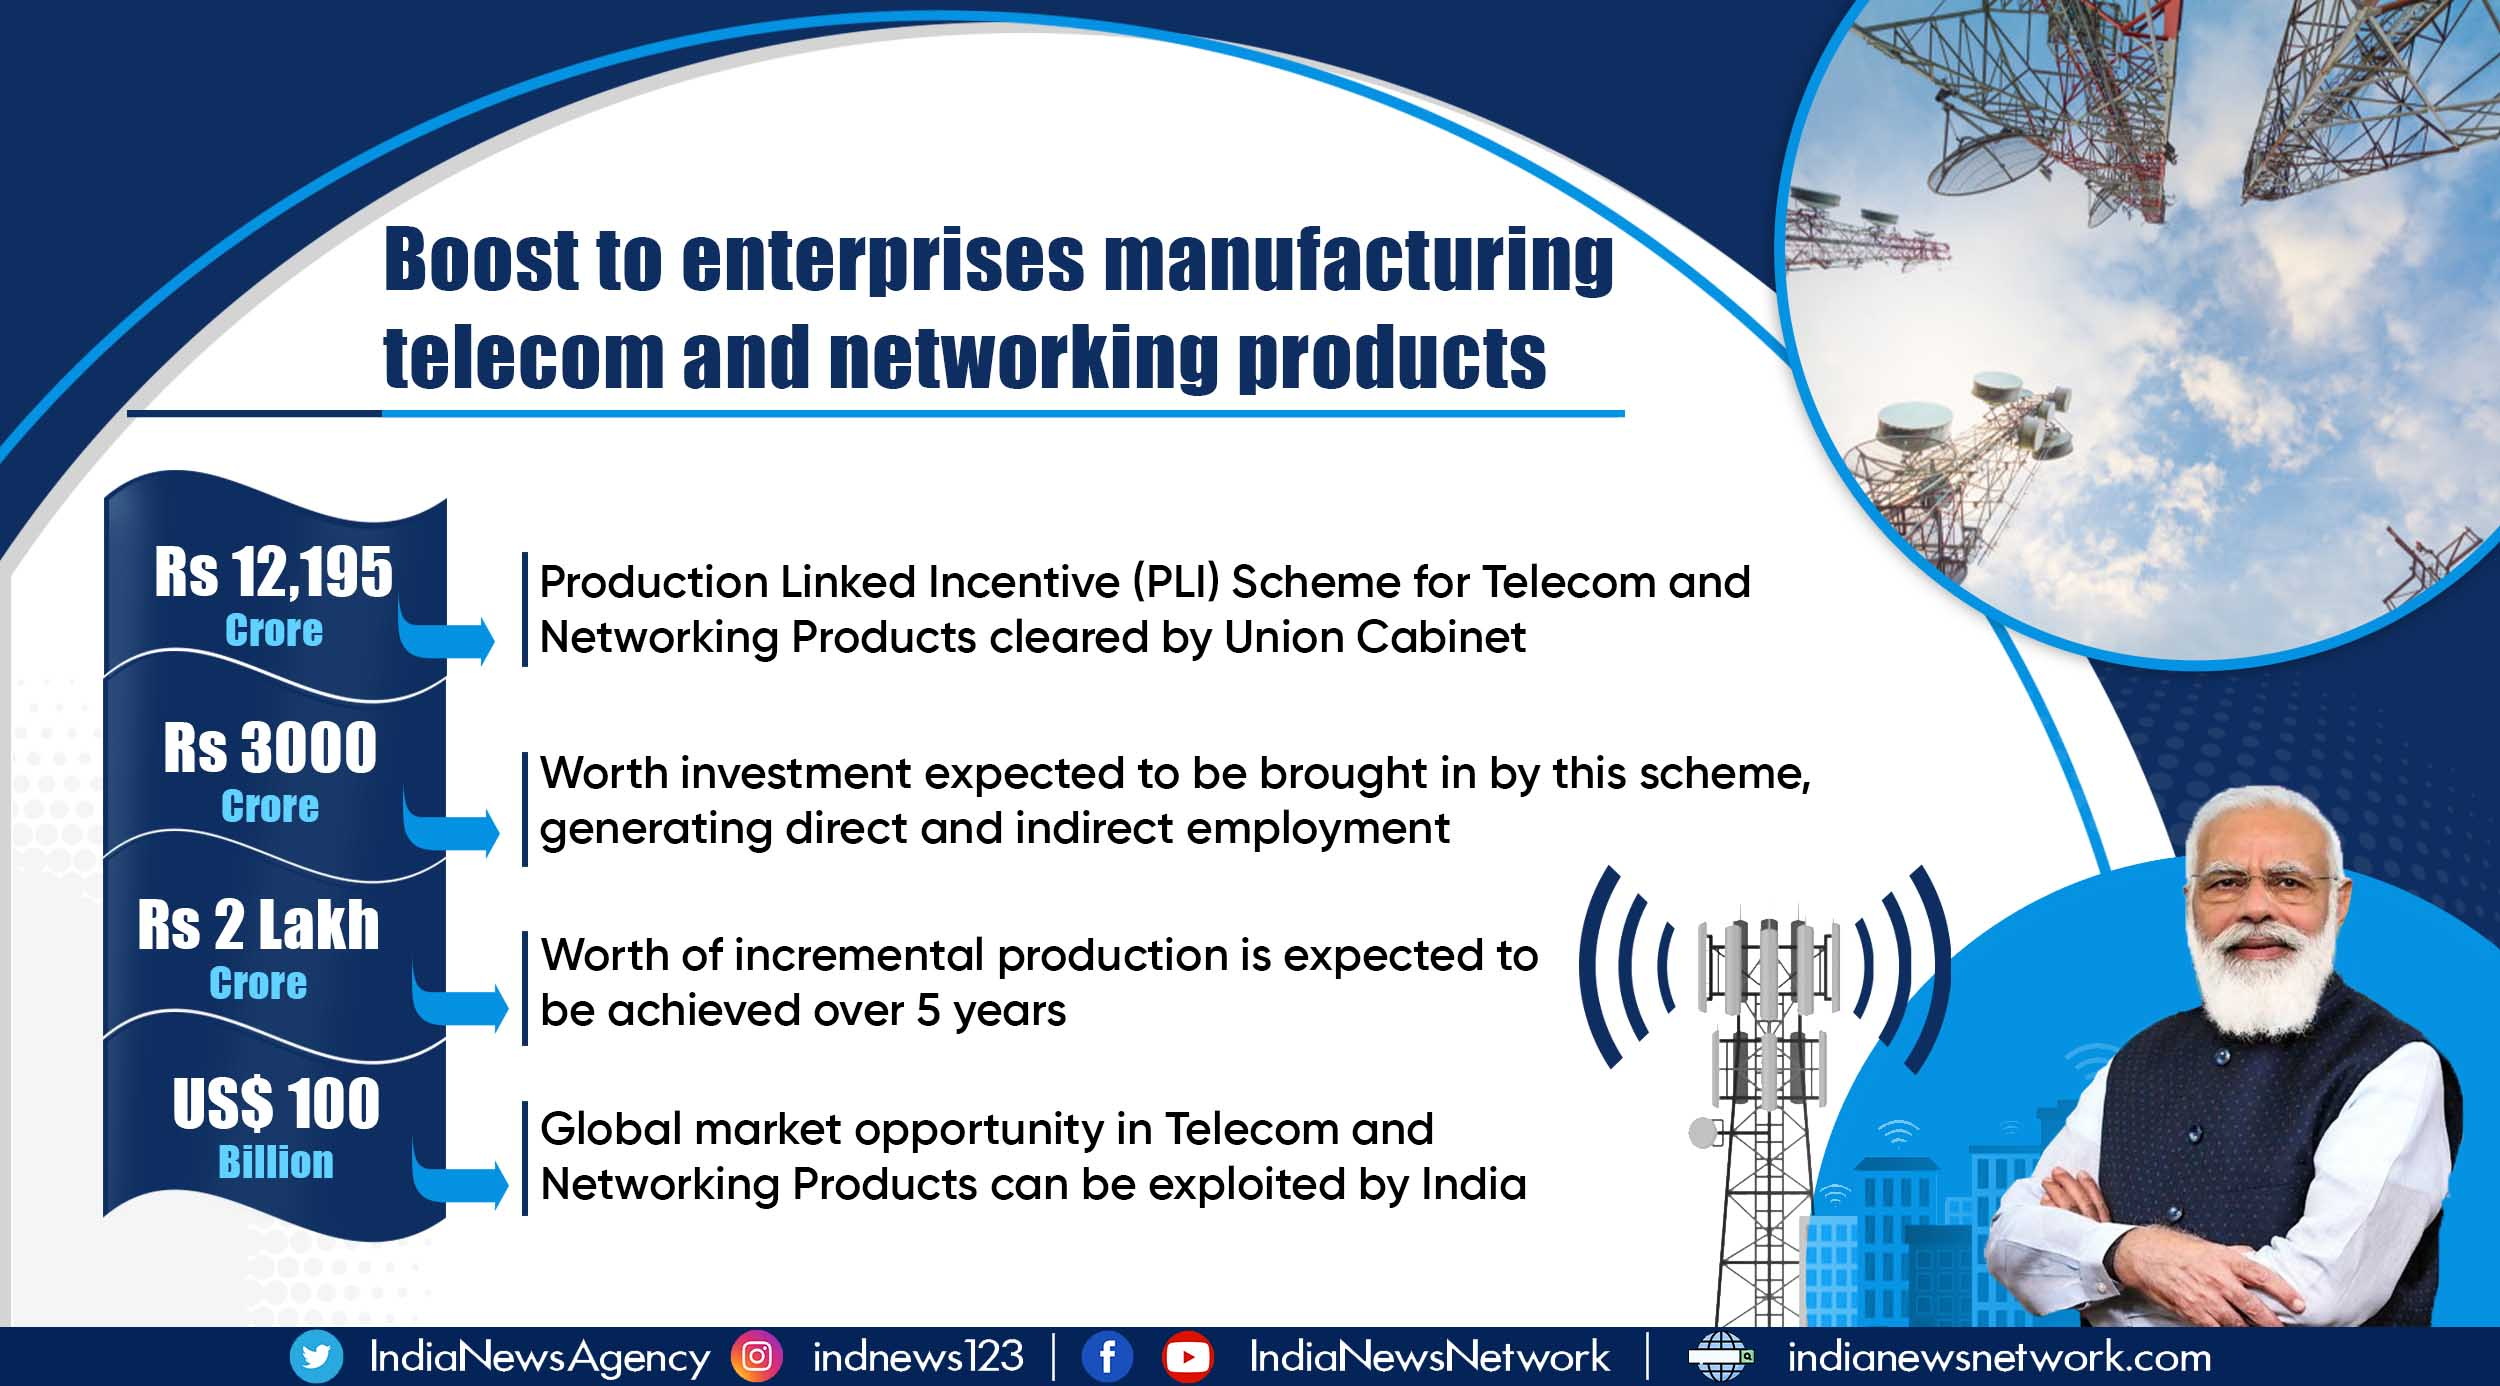 Promoting India as hub of global telecom manufacturing